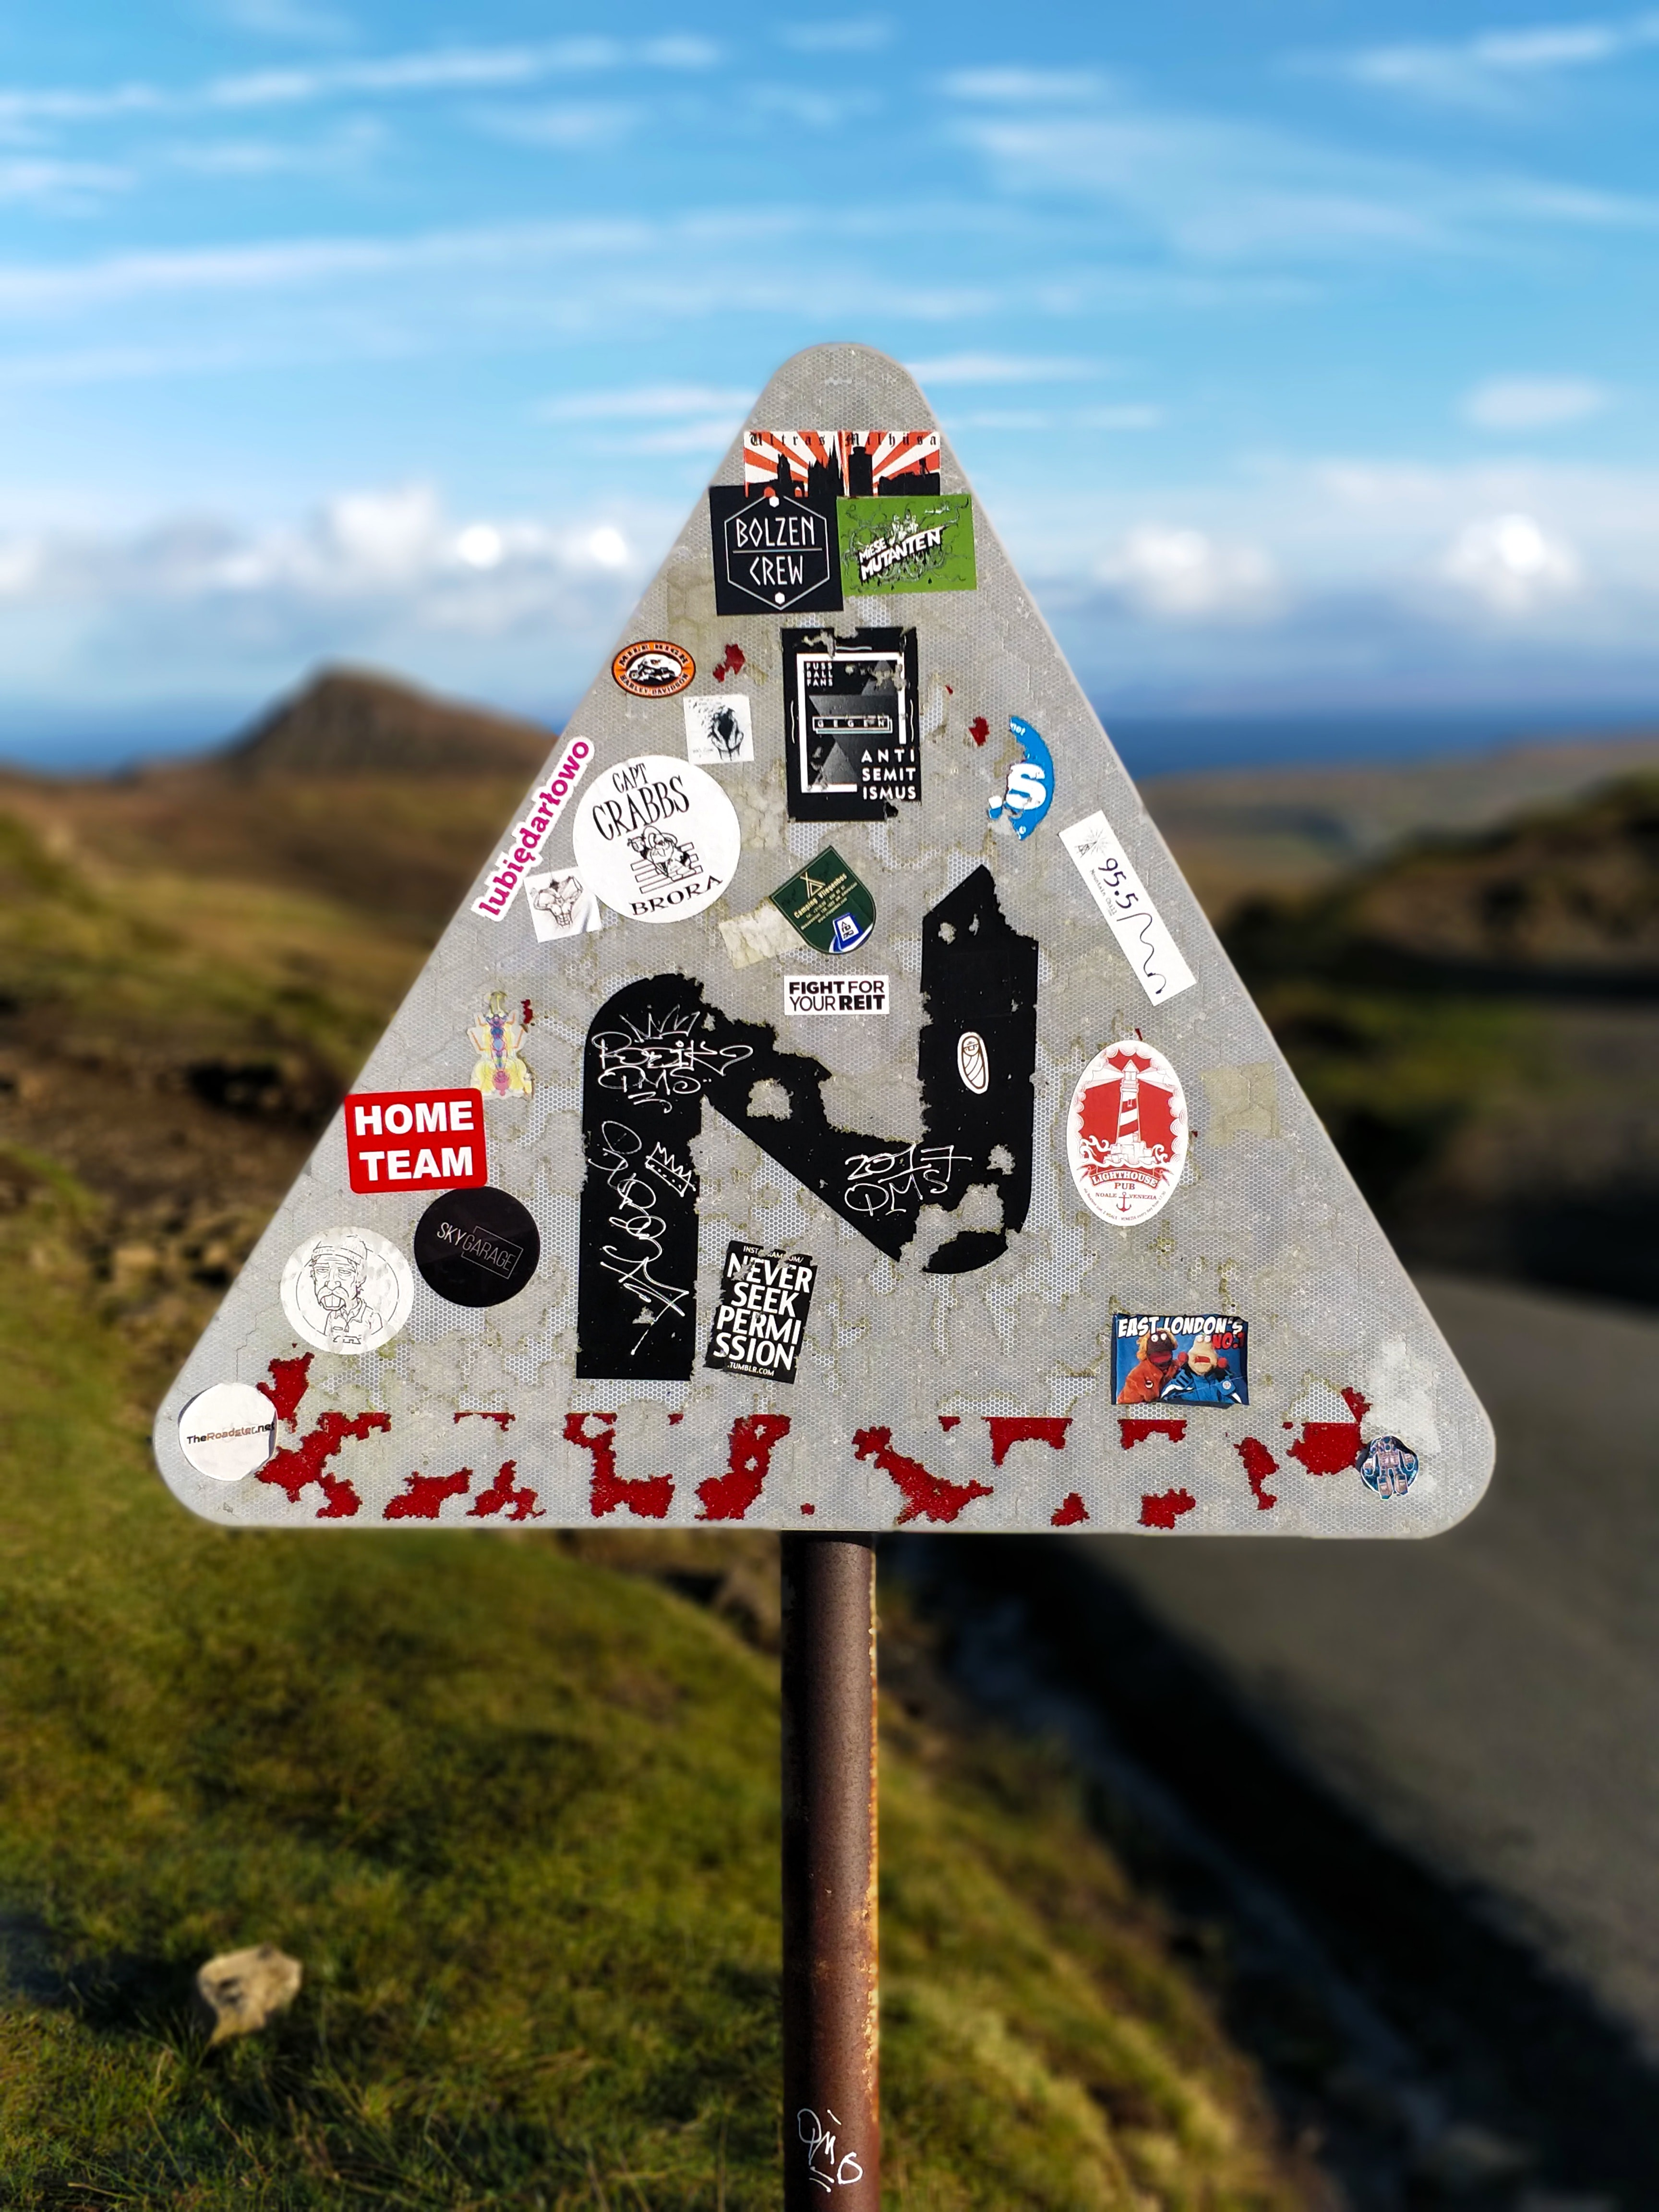 stickers on road signage